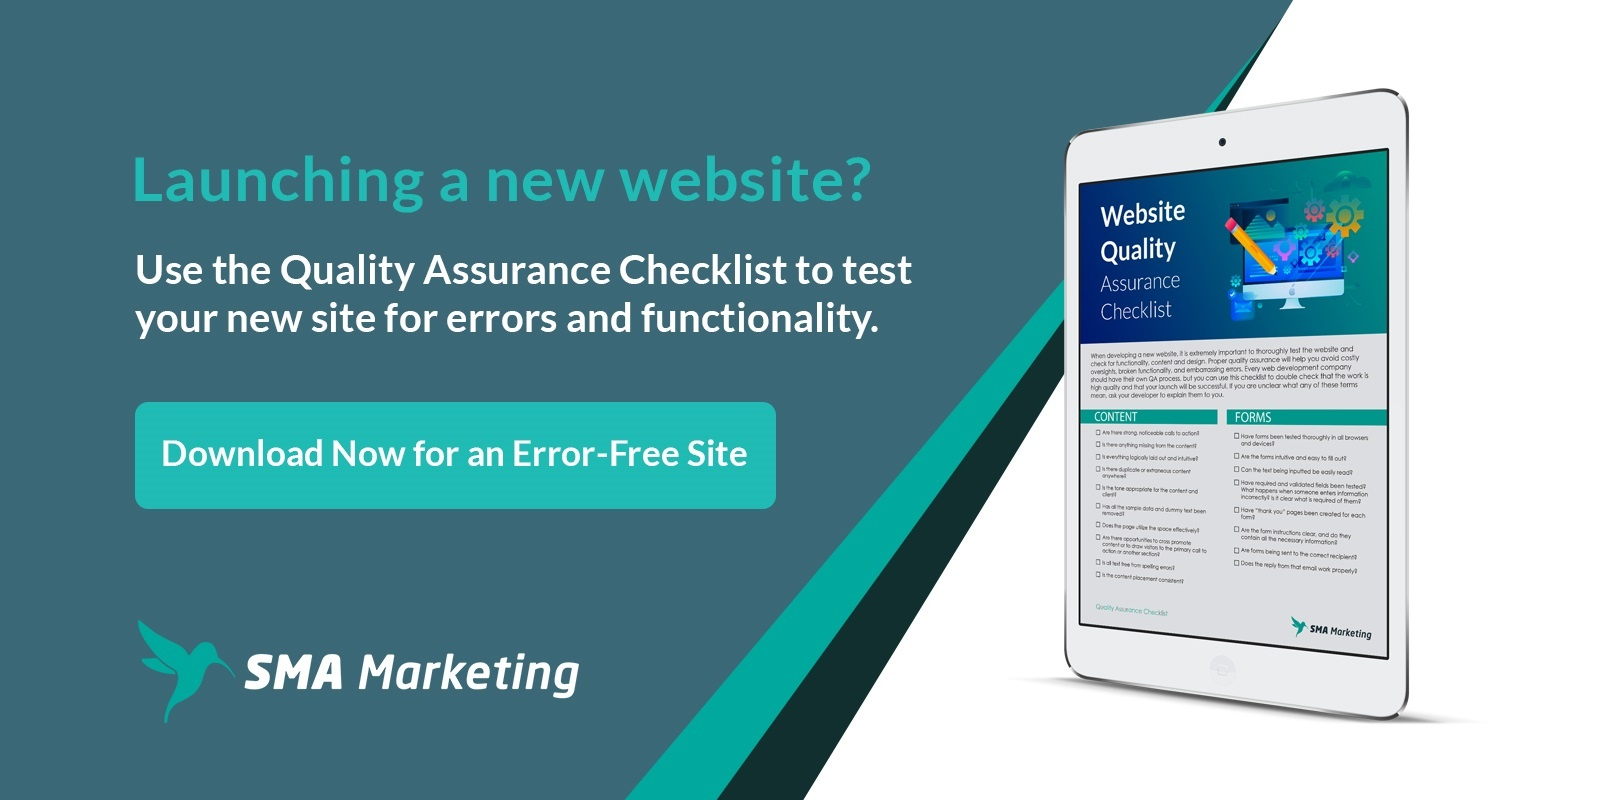 Website Quality Assurance Checklist